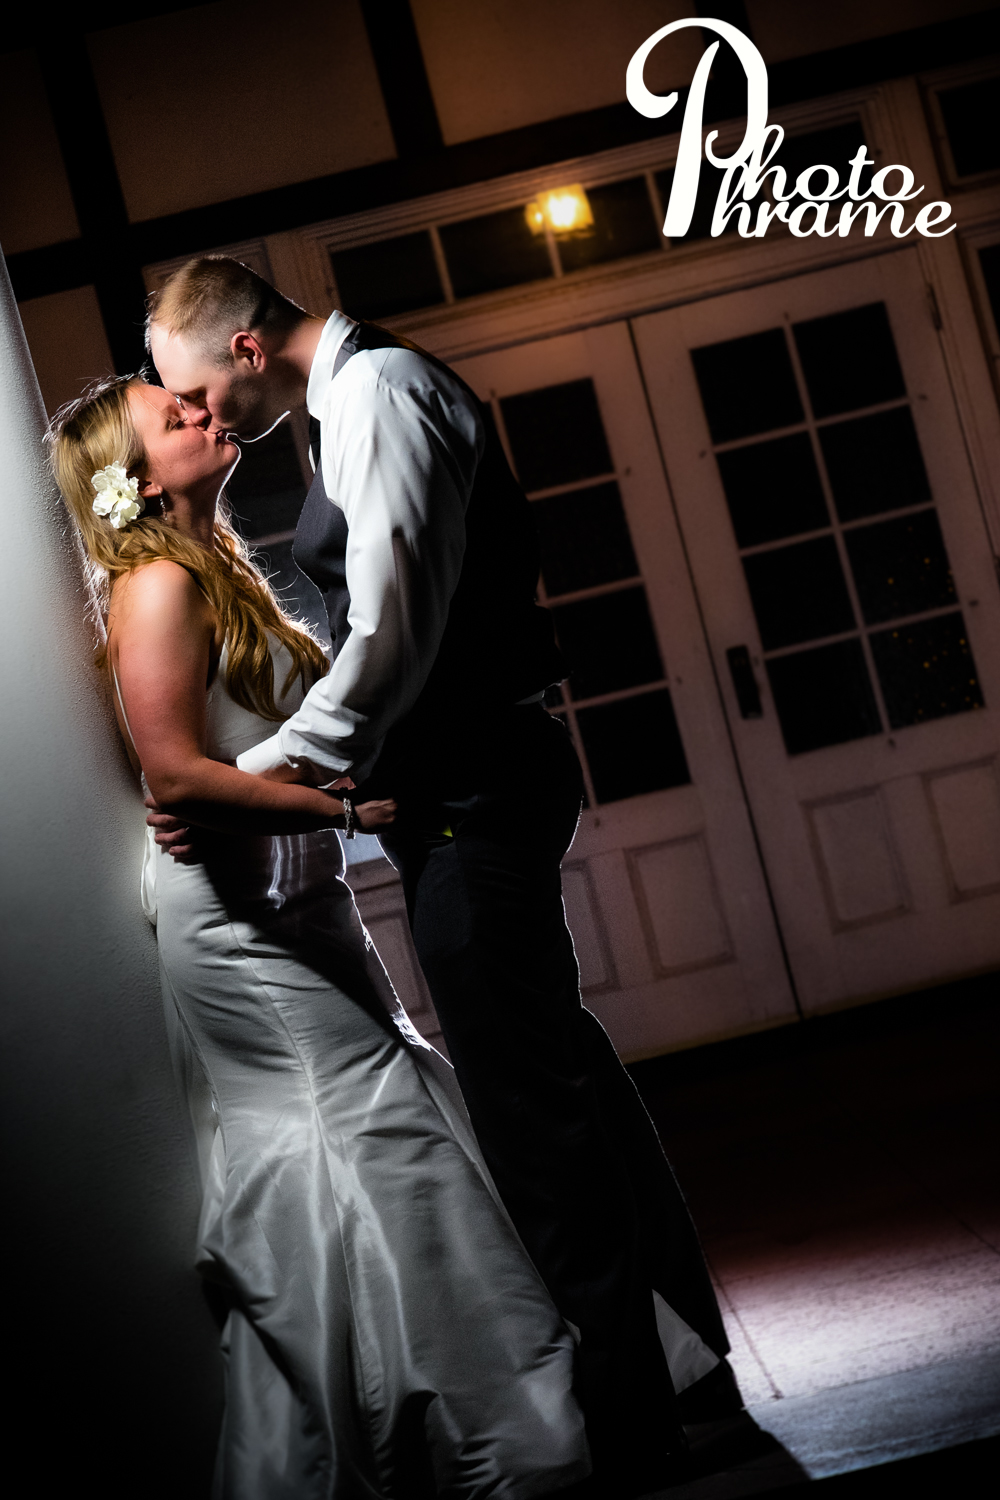 Can you feel the heat? Photo Phrame Photography, affordable and classy Wedding Photography, Albany, Saratoga, NY